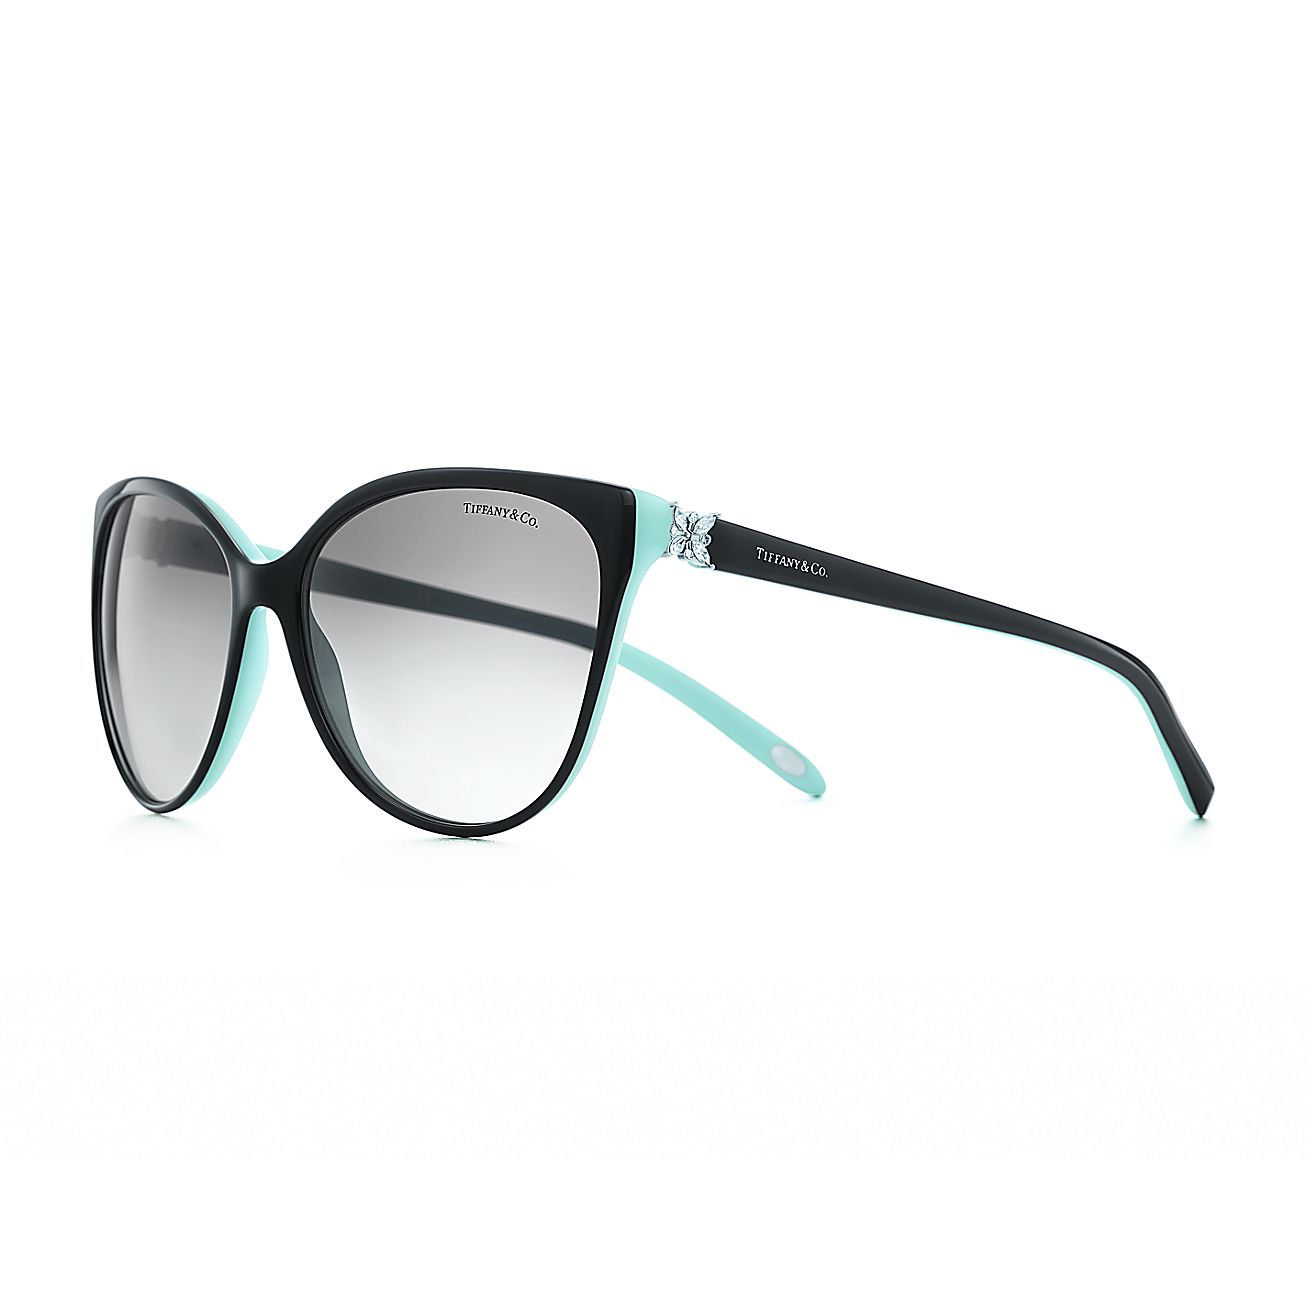 Tiffany Glasses Frames New York : Tiffany Victoria Cat eye sunglasses in black and Tiffany ...